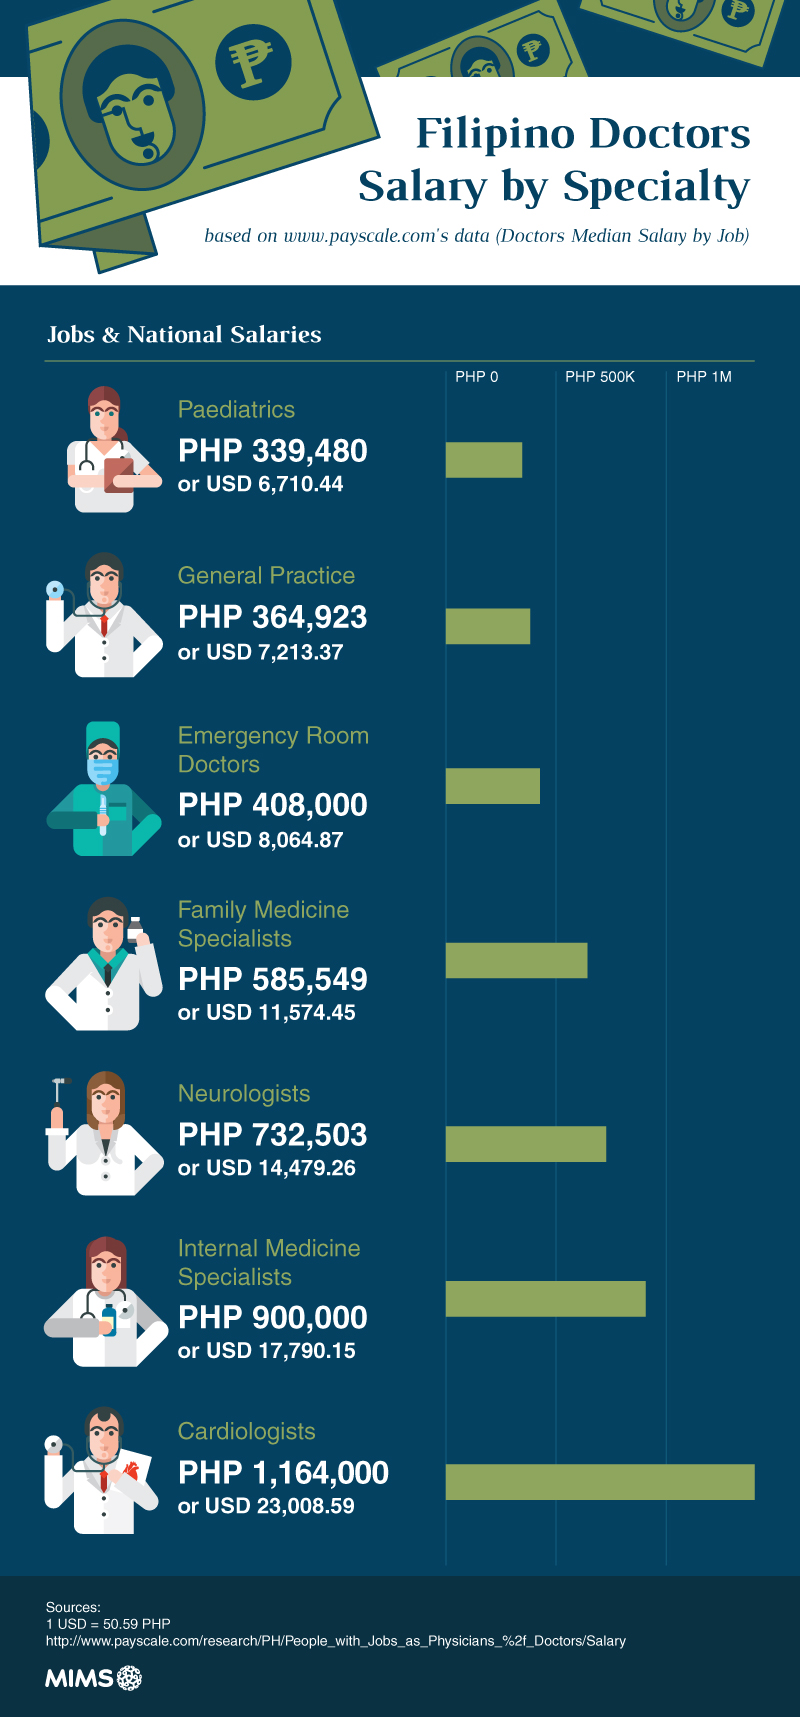 Filipino_Doctors_Salary_by_Specialty-infographic-plaza